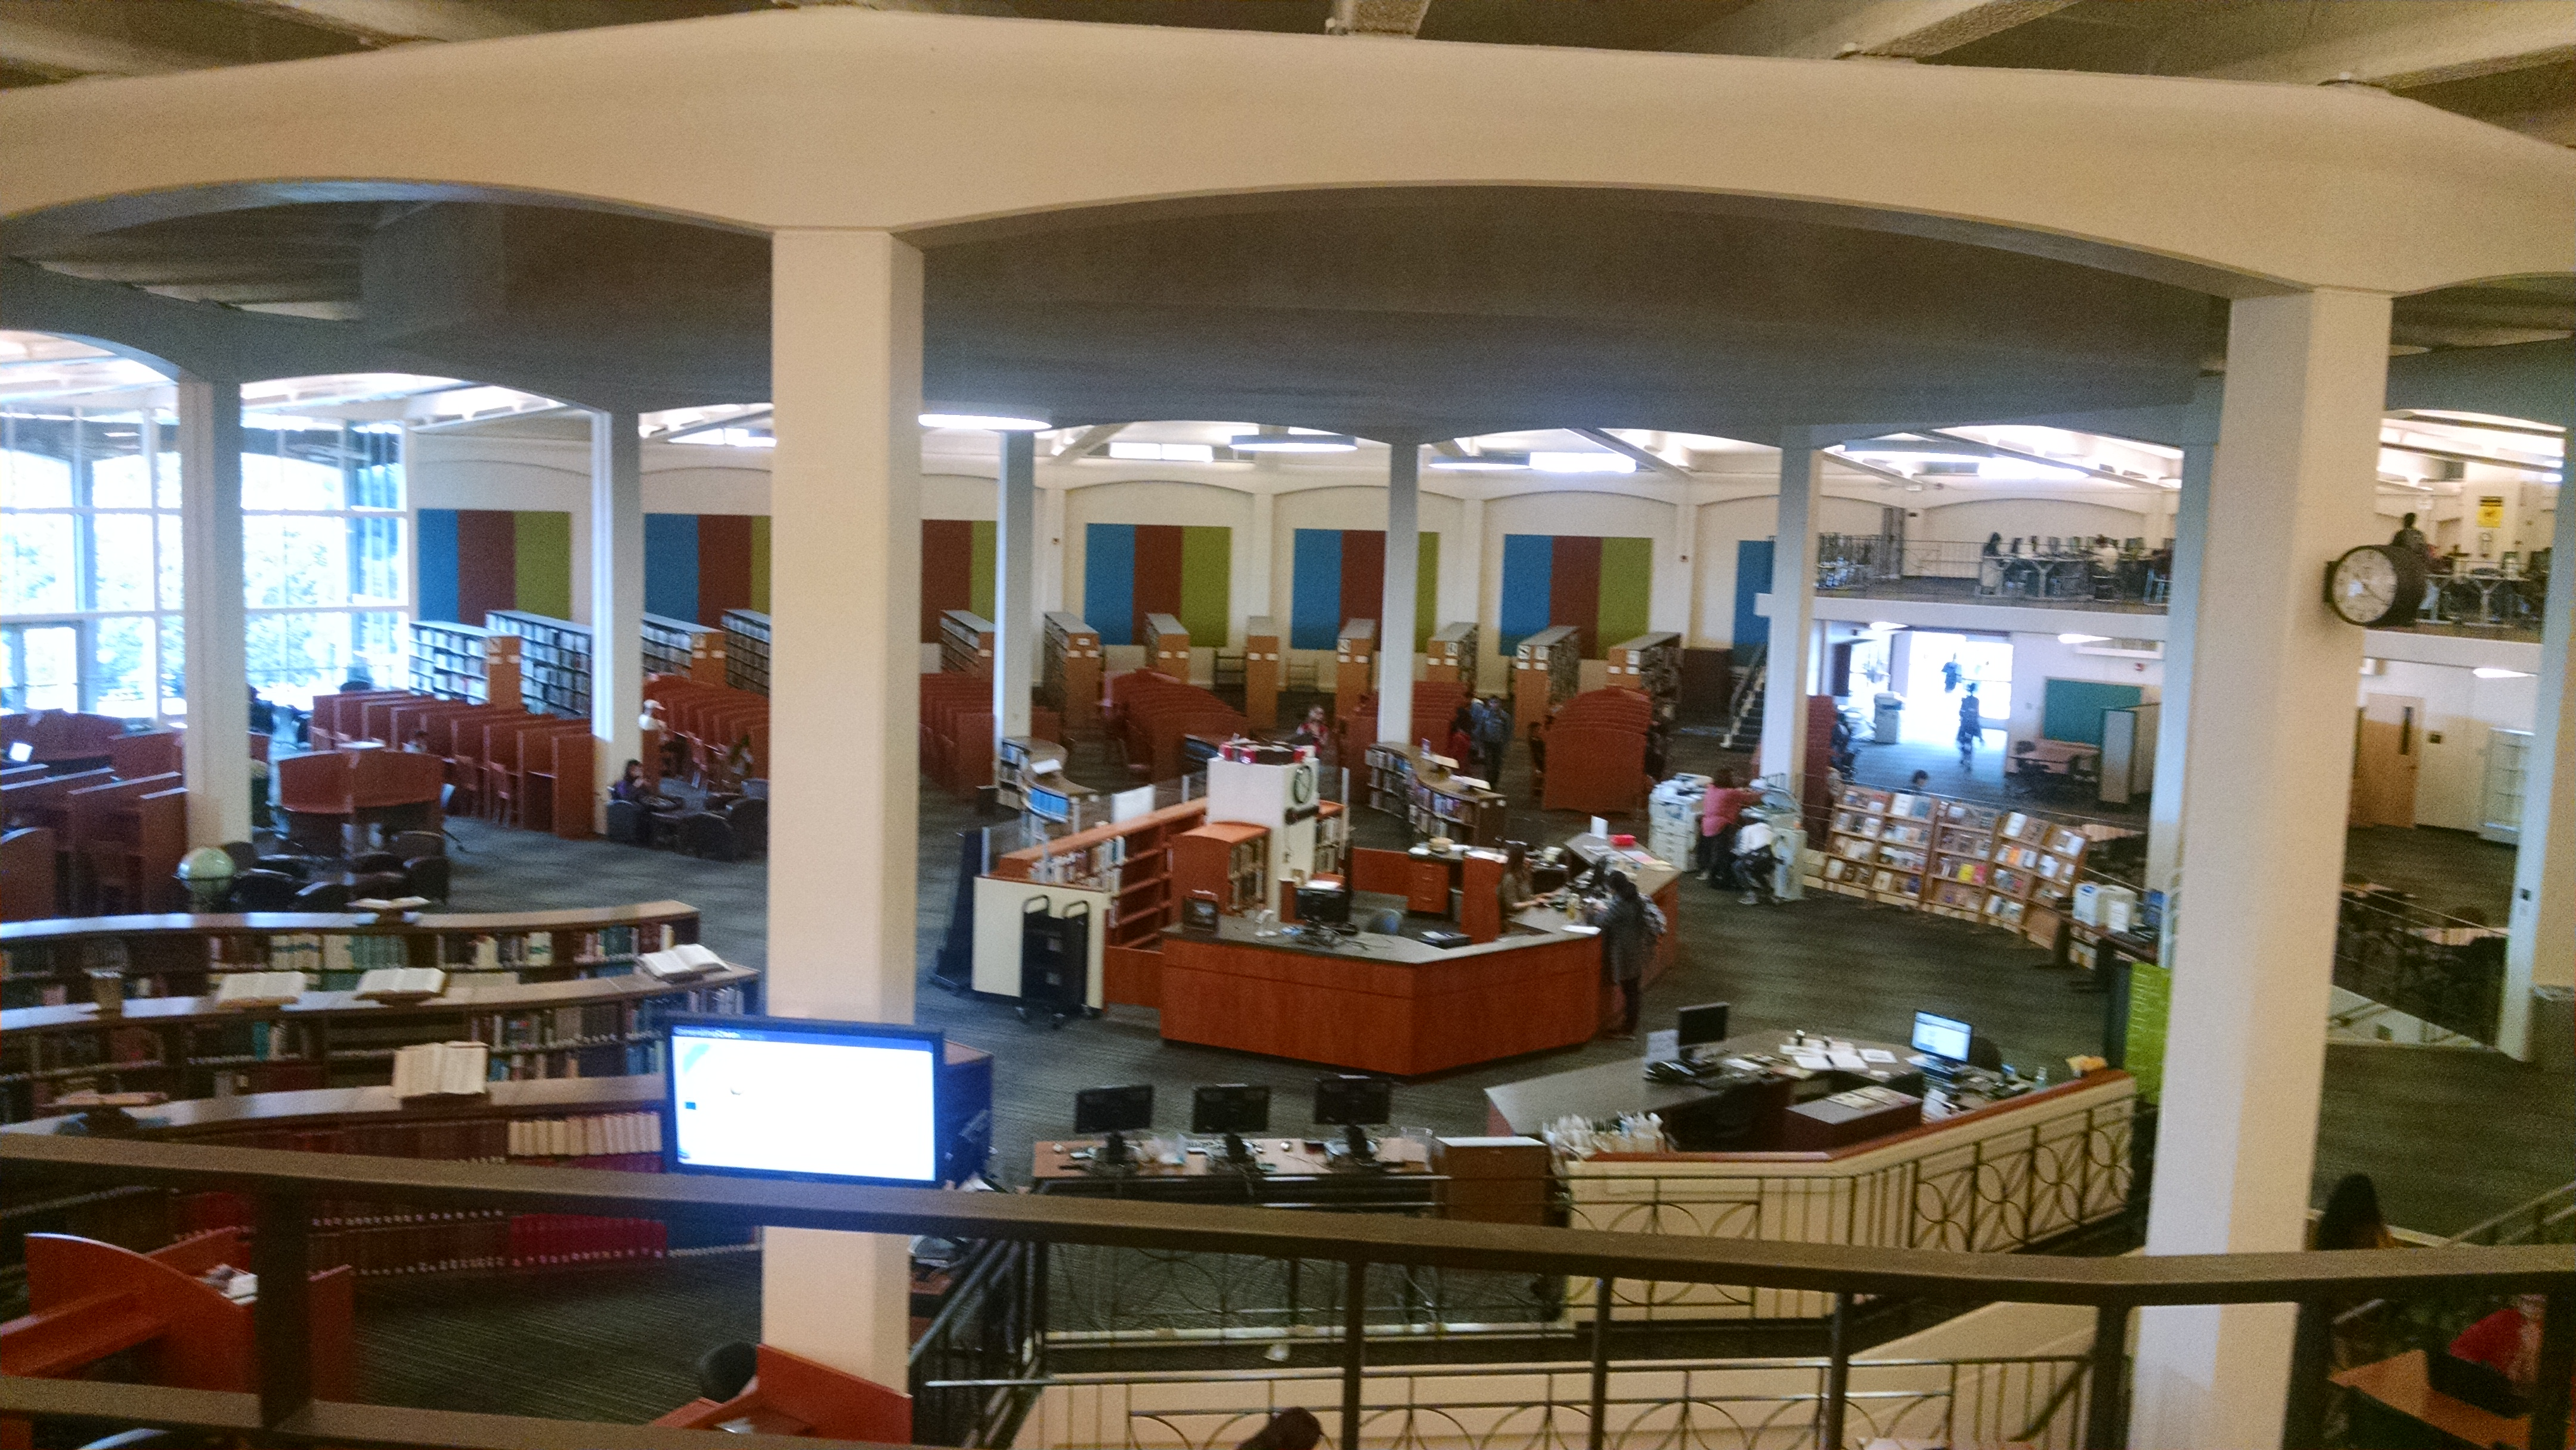 Panoramic View of Library from Mezzannine